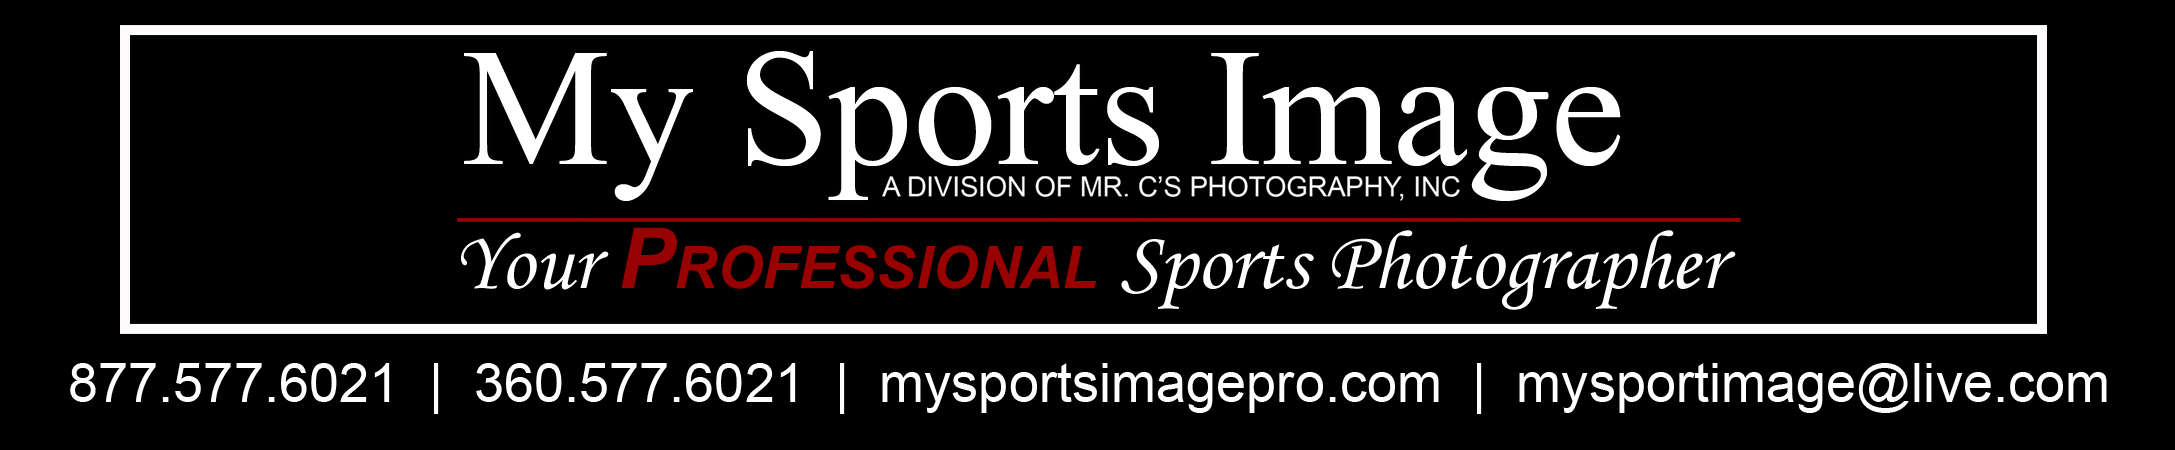 My Sports Image Pro Your Professional Sports Photographer